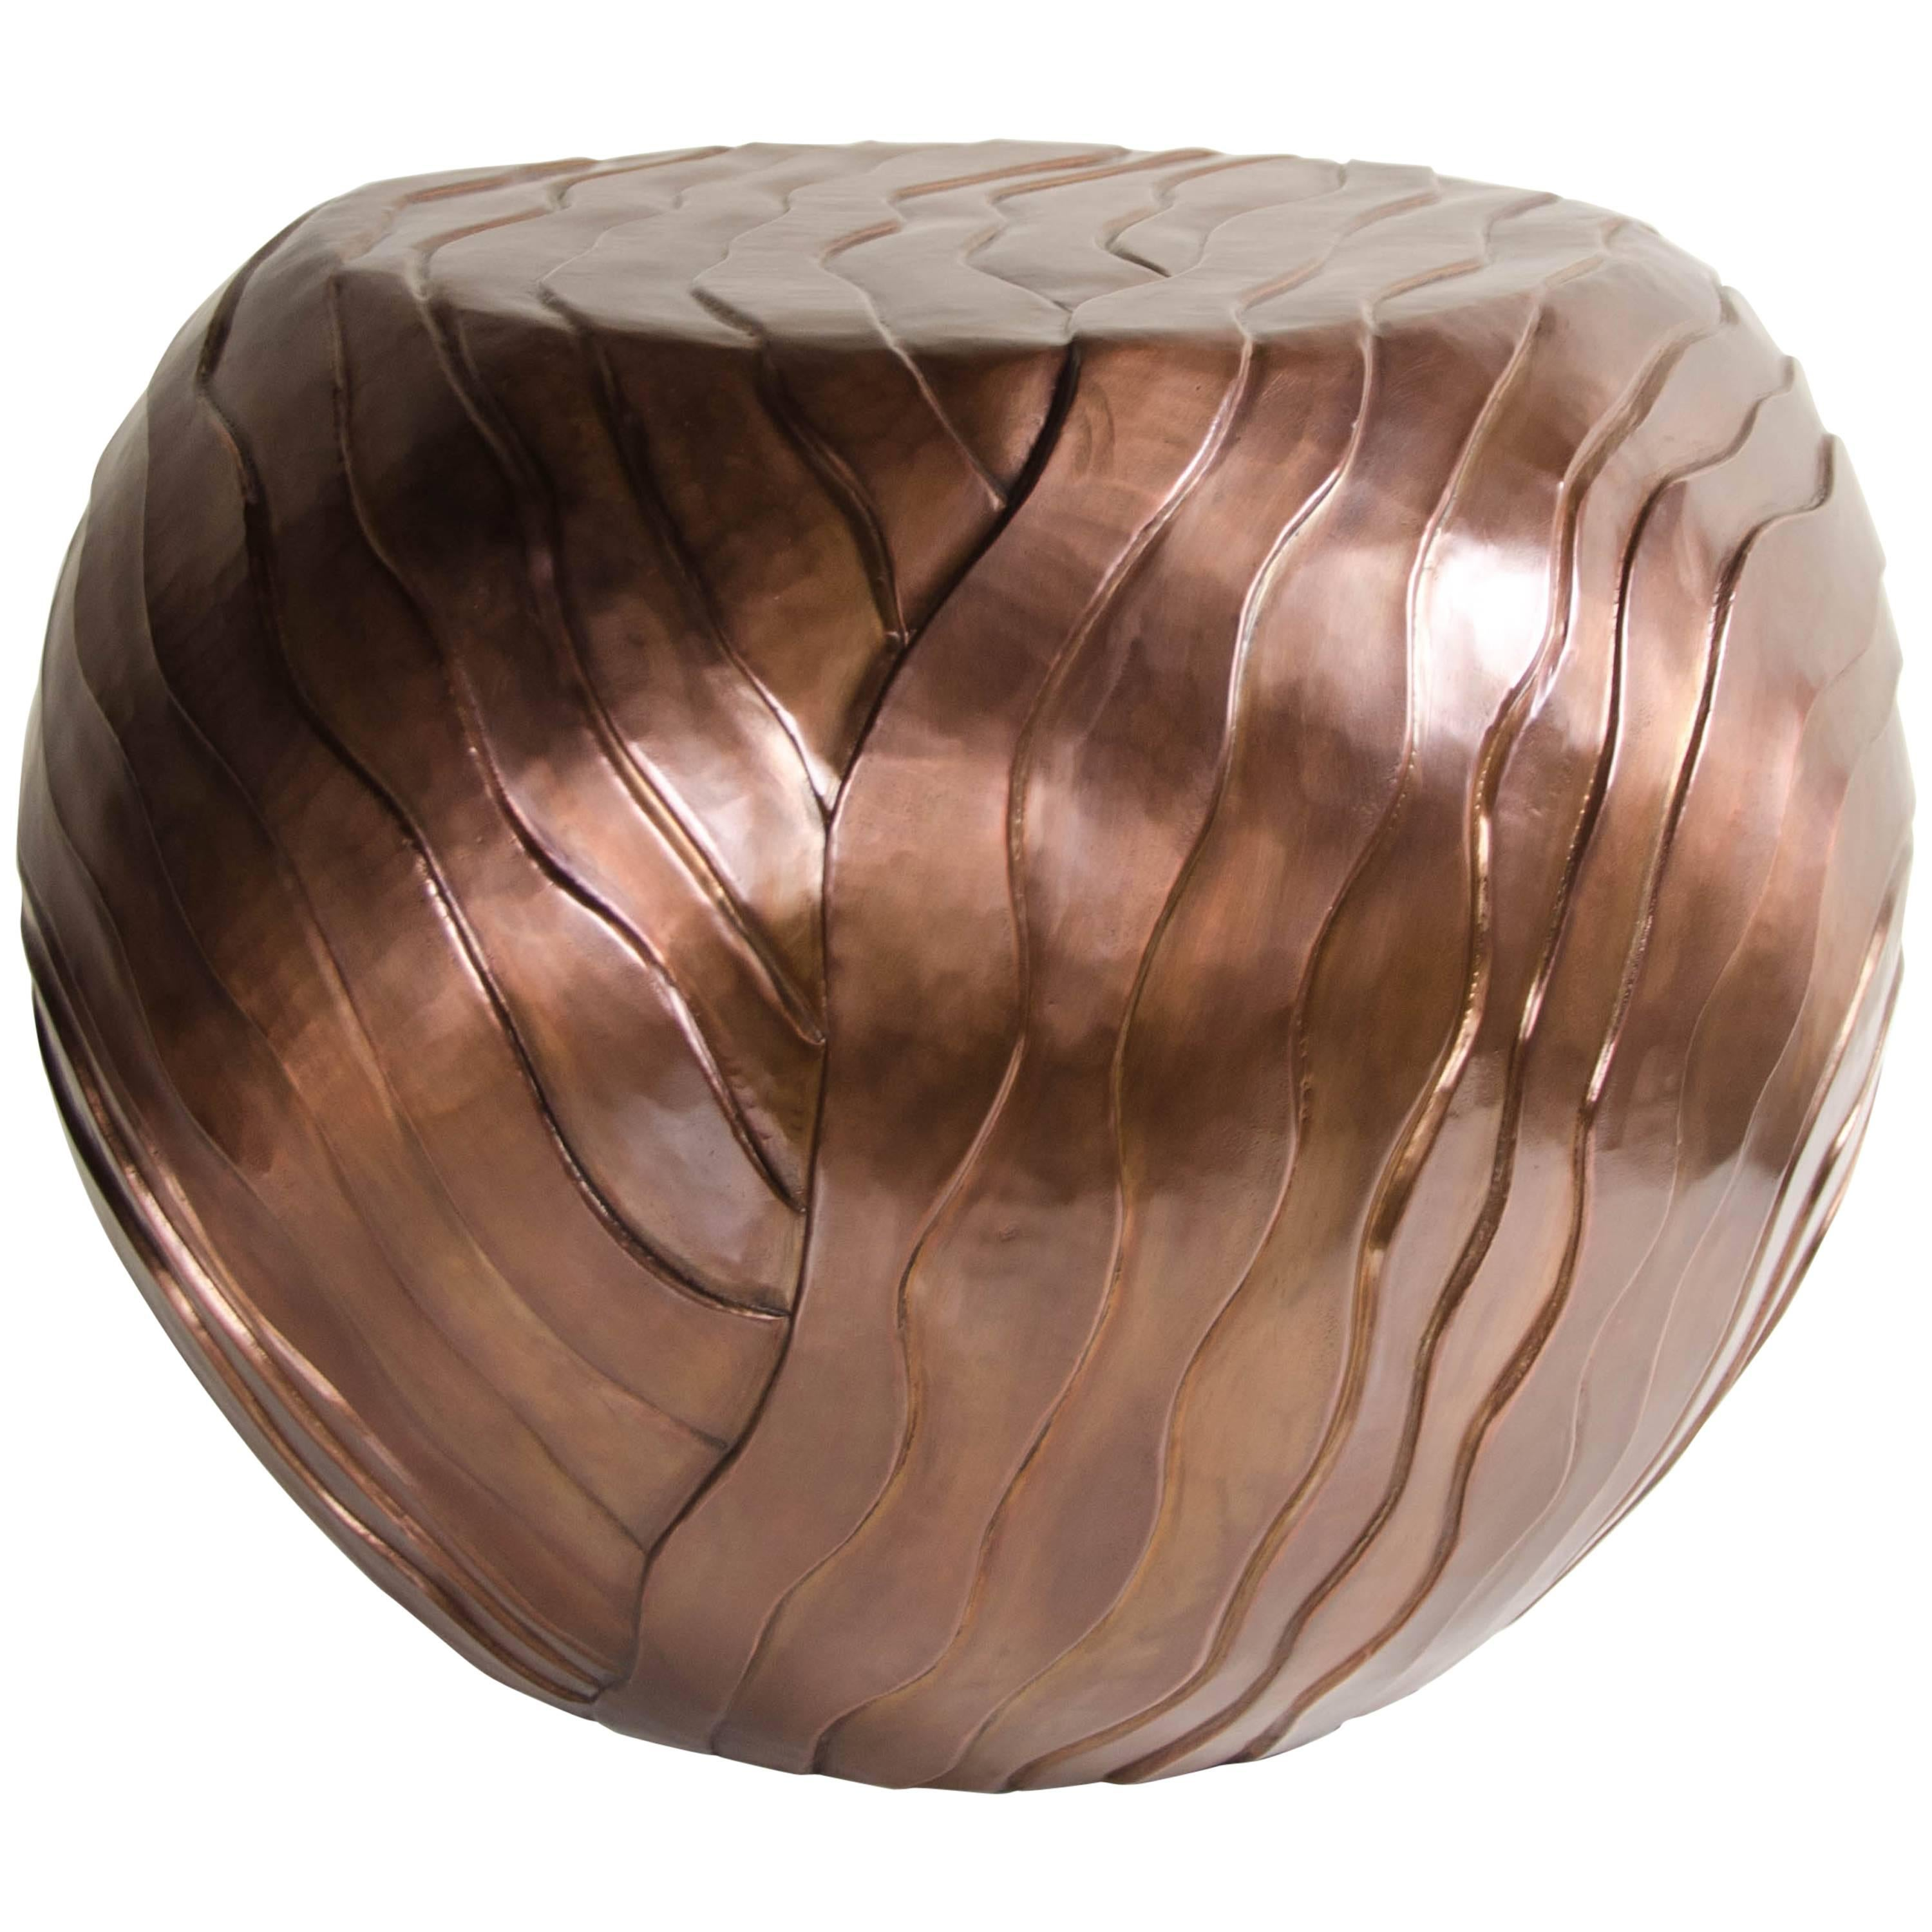 Cascade Design Low Drum Stool by Robert Kuo, Limited Edition, Customizable